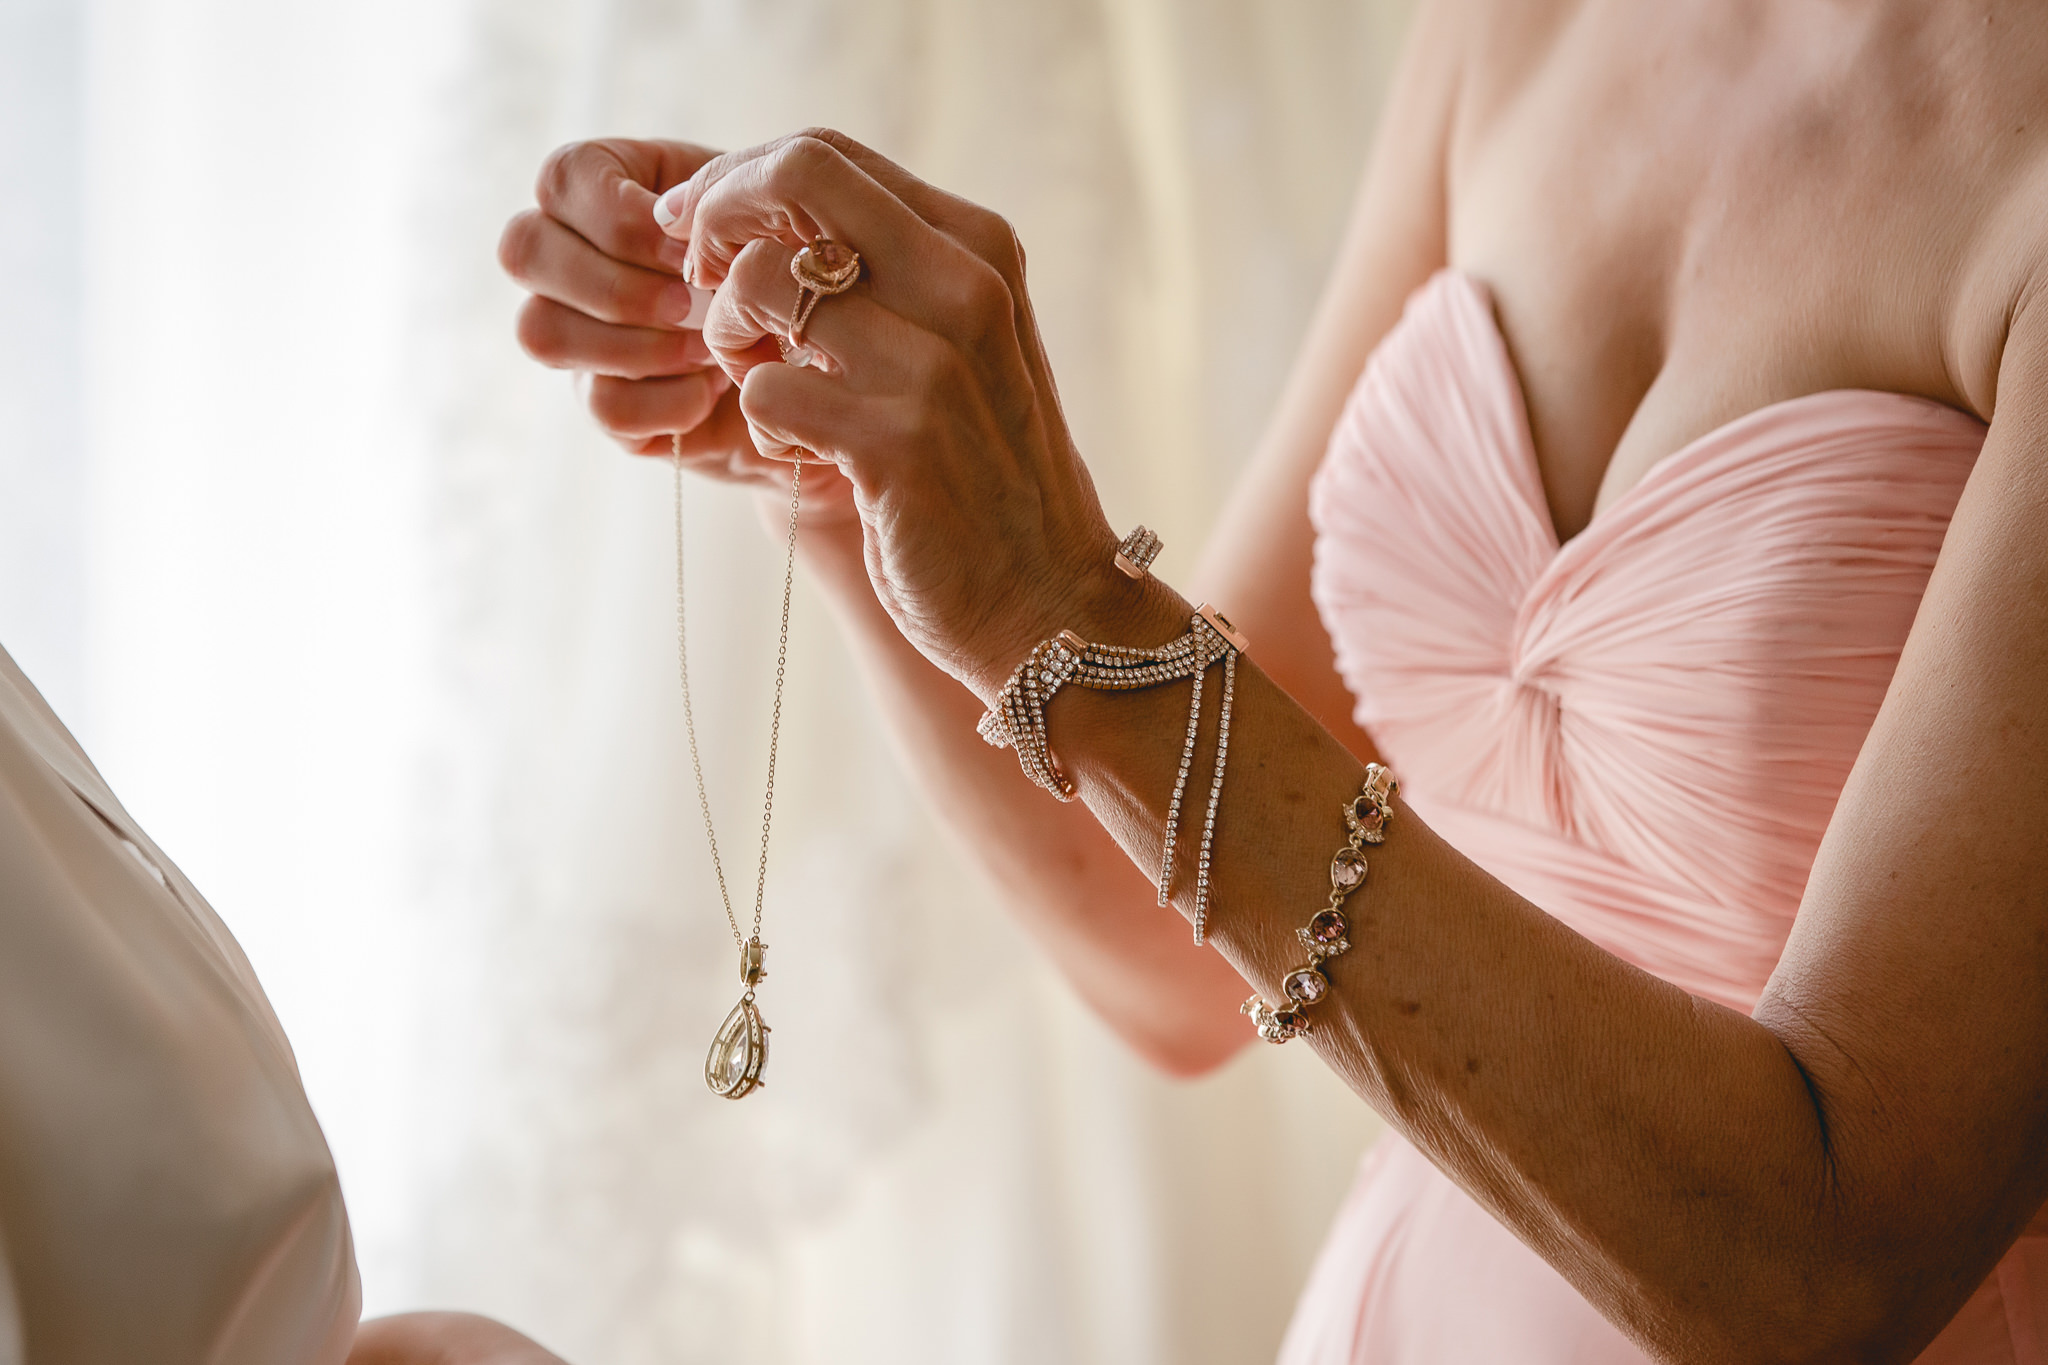 Mother of the bride holding bride's necklace